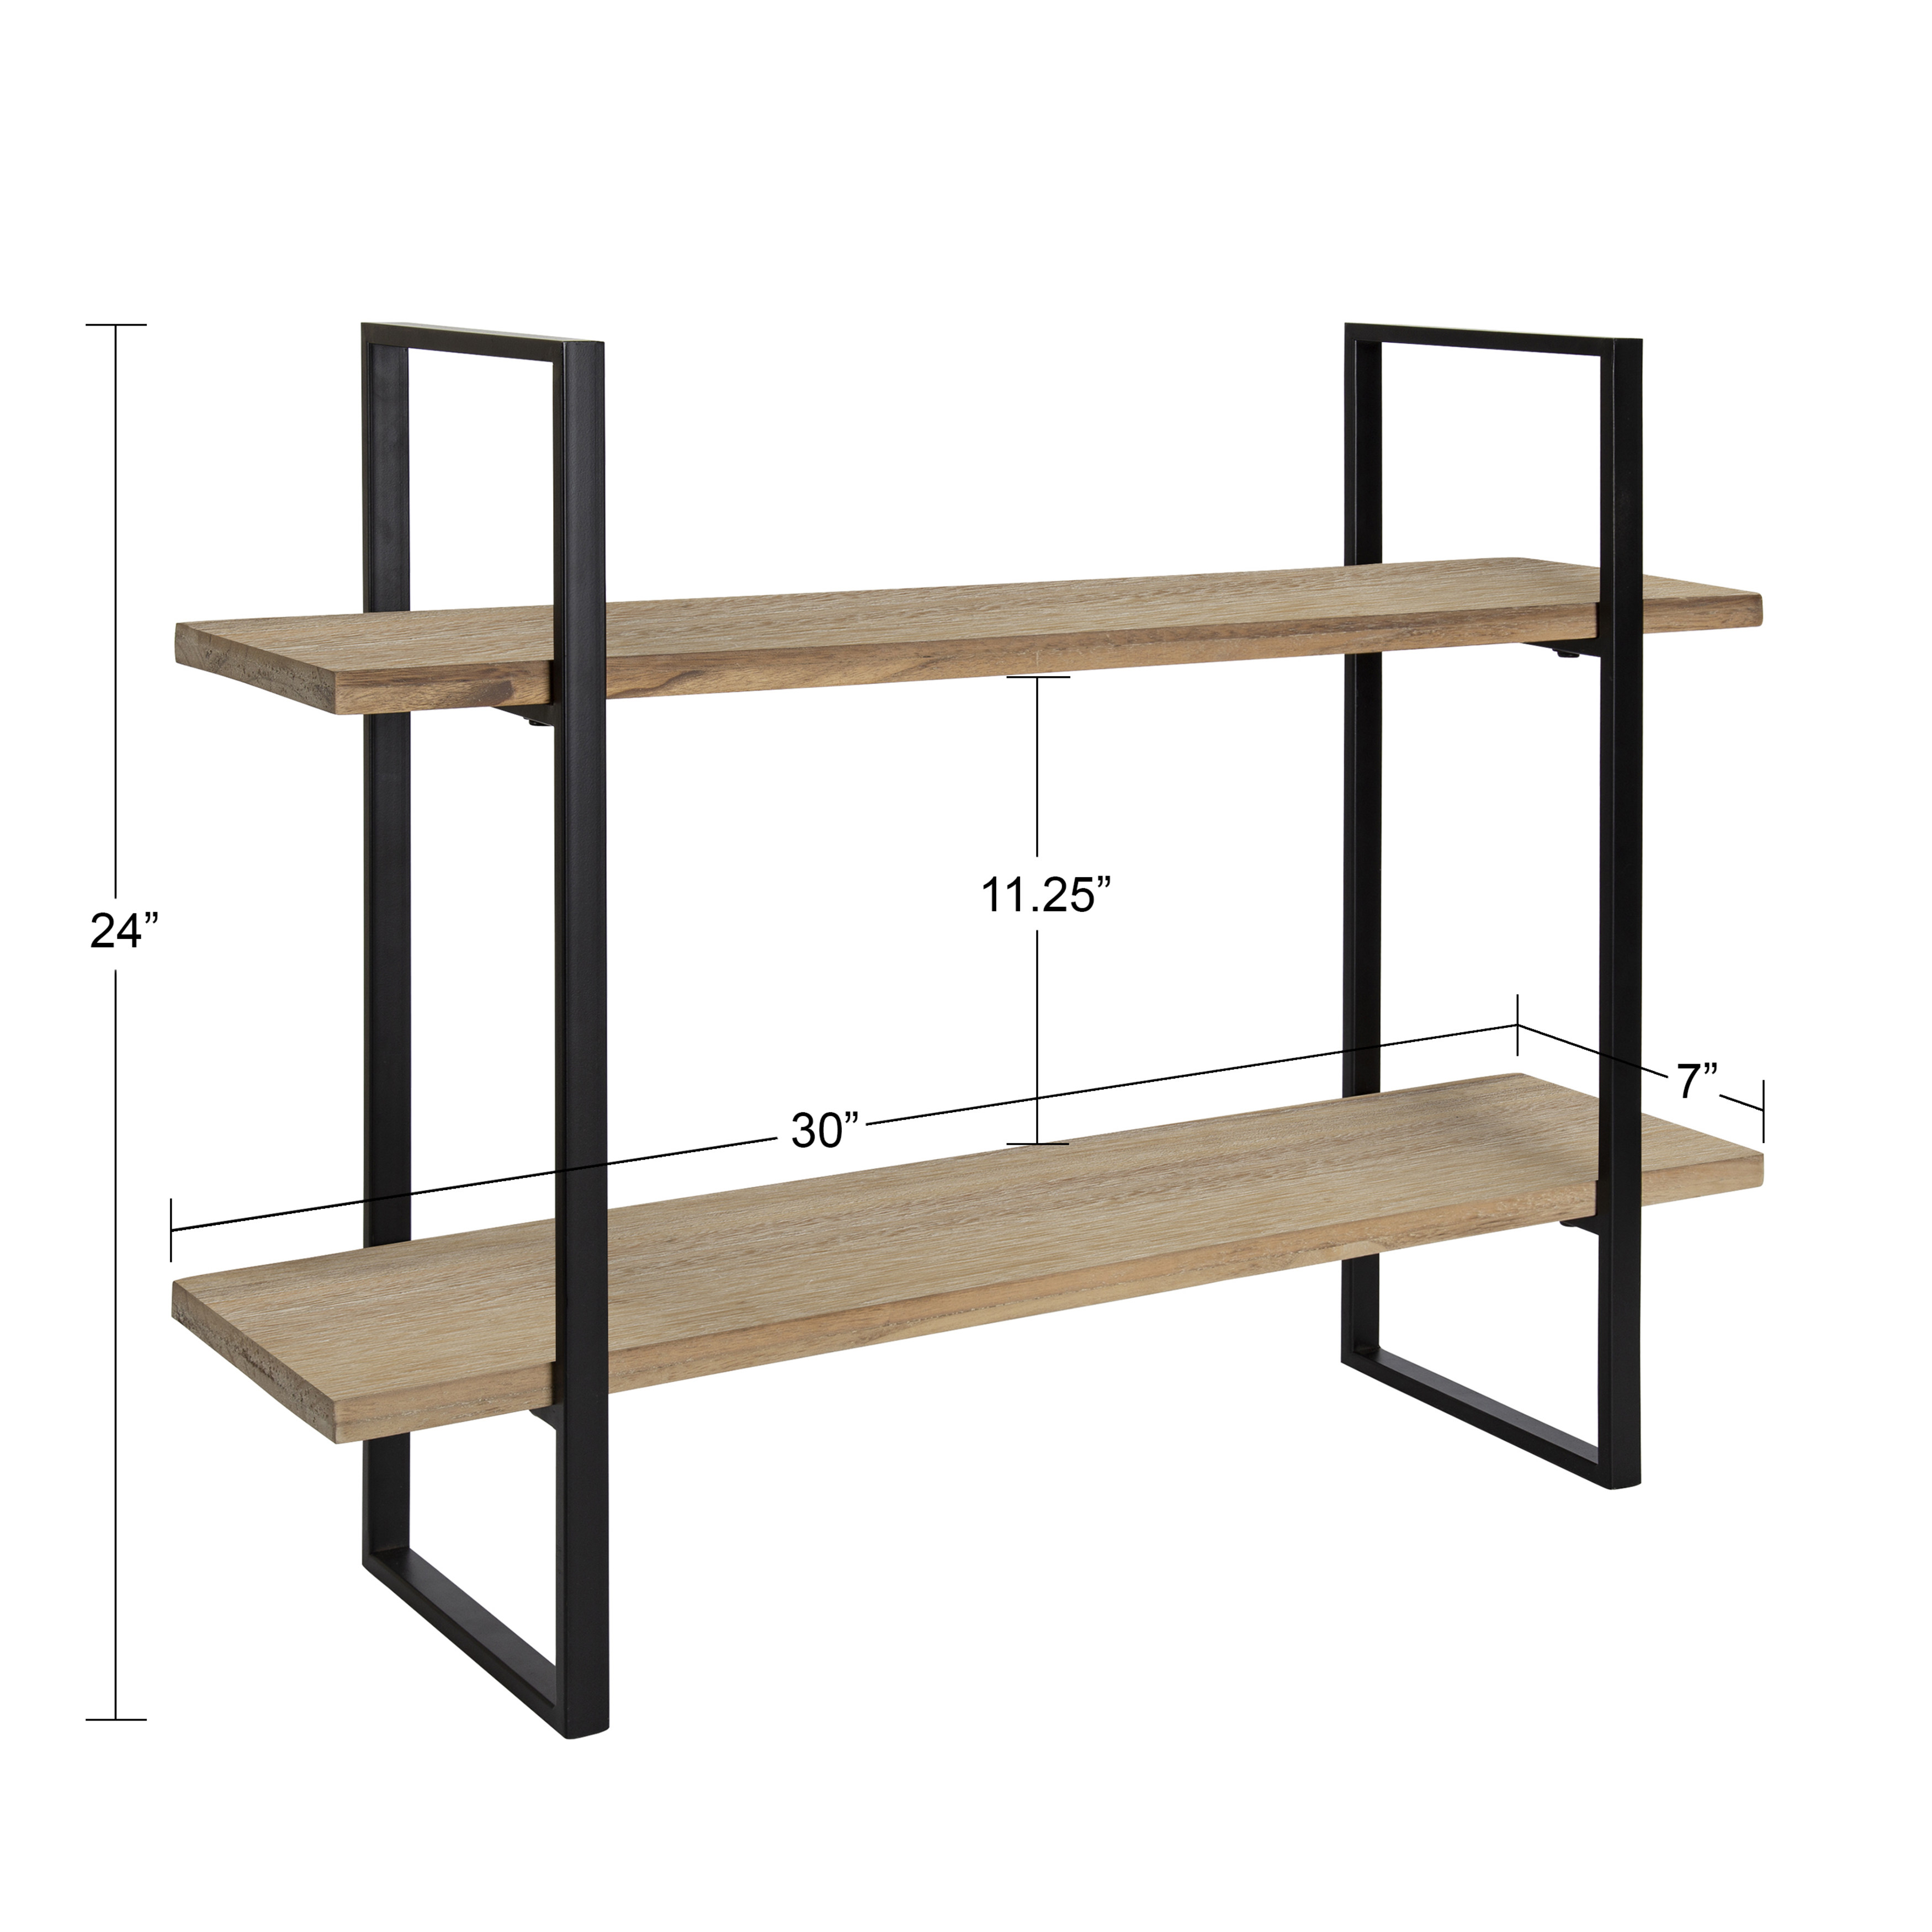 Kate And Laurel Leigh Wood And Metal Wall Shelf 30 X 24 Rustic Brown And Black Unique Modern Farmhouse Decor With Efficient Storage Shelves For Smaller Spaces Walmart Com Walmart Com